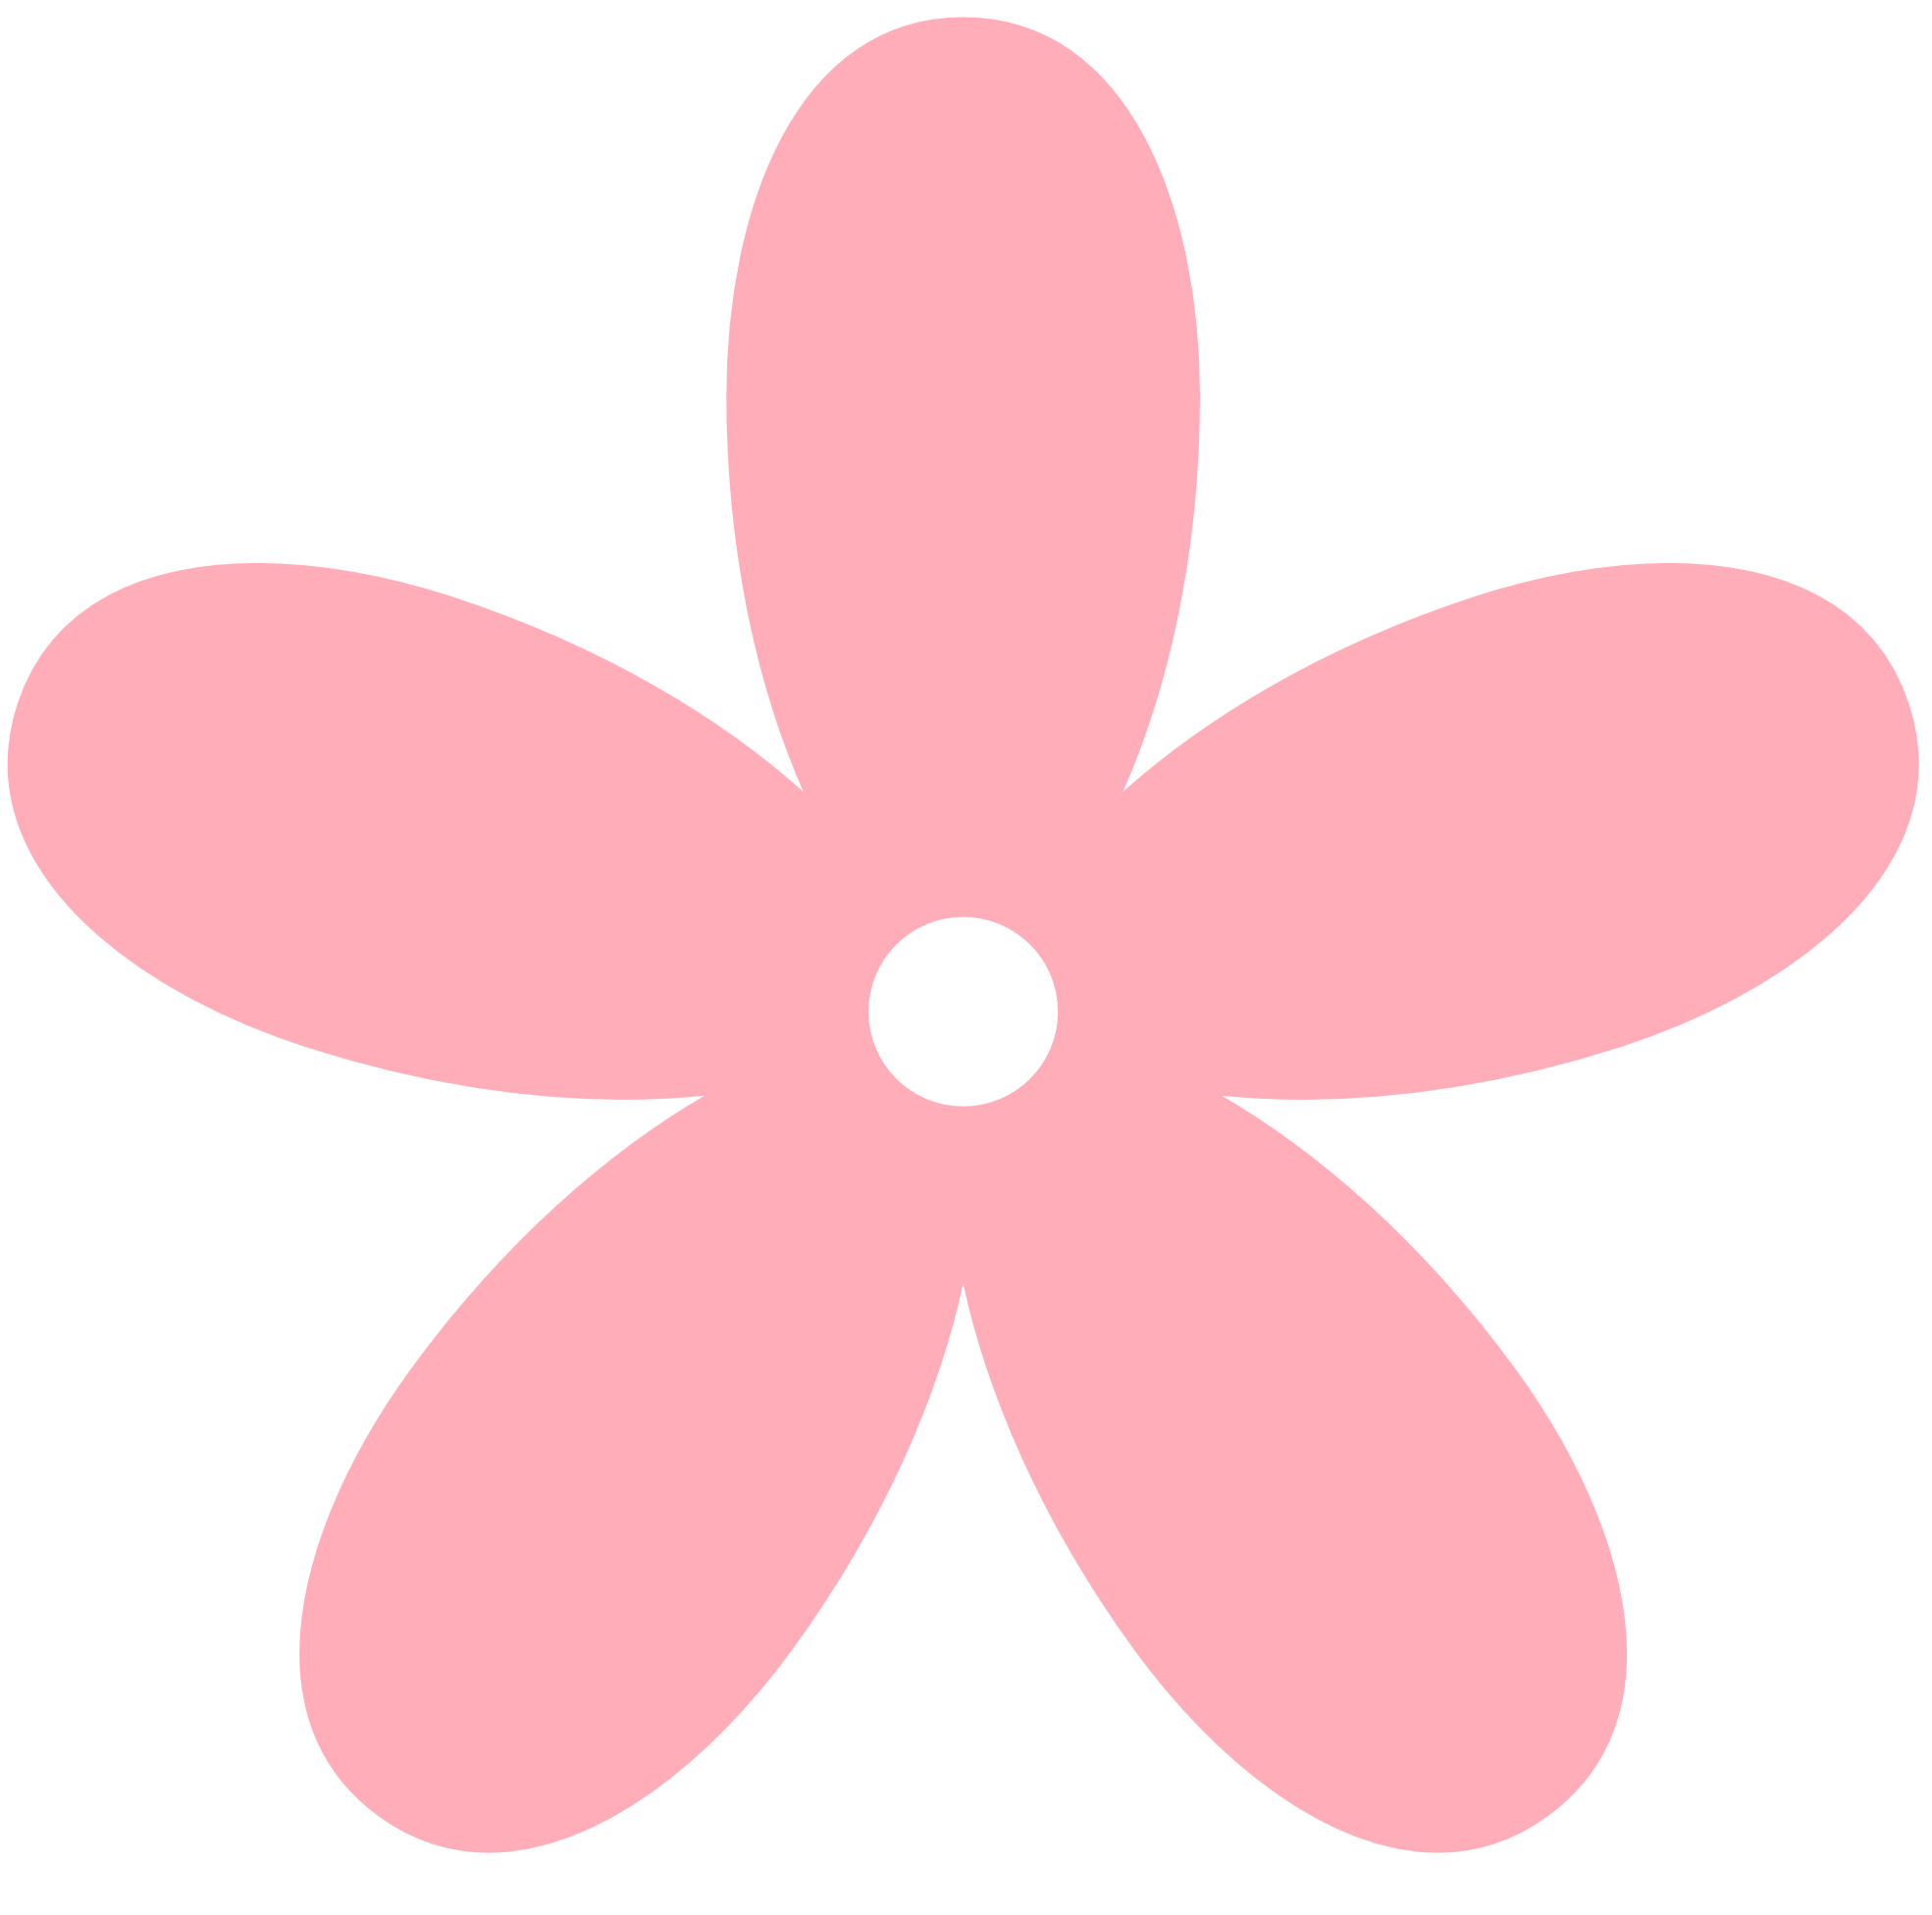 Pink Cartoon Flower - ClipArt Best